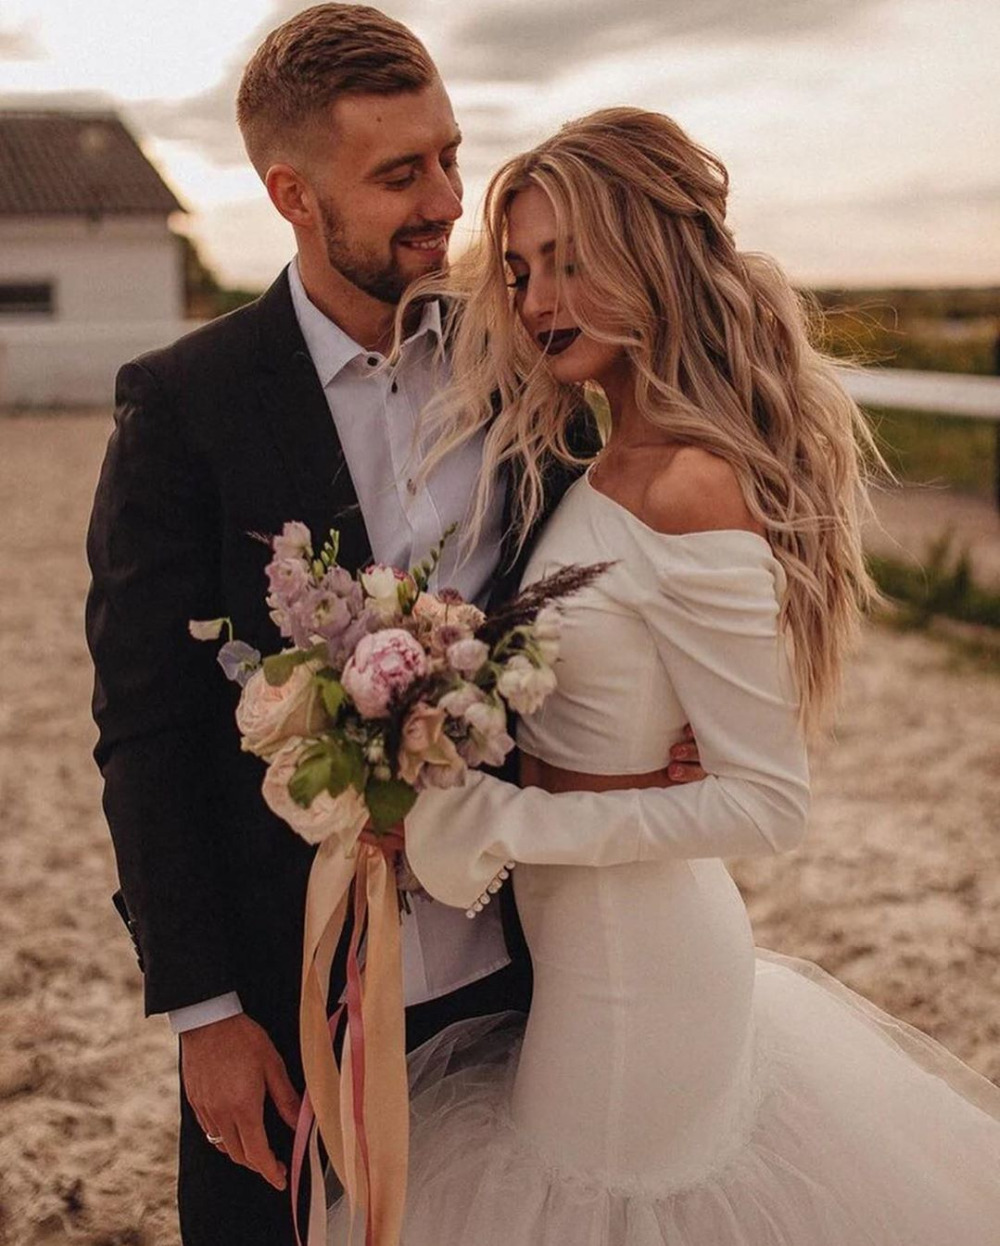 wedding : Bohemian Vintage Two Pieces Wedding Dresses 2021 Robe De Mariee New Vintage Long Sleeve Bridal Gown O-Neck Beach Wedding Gown